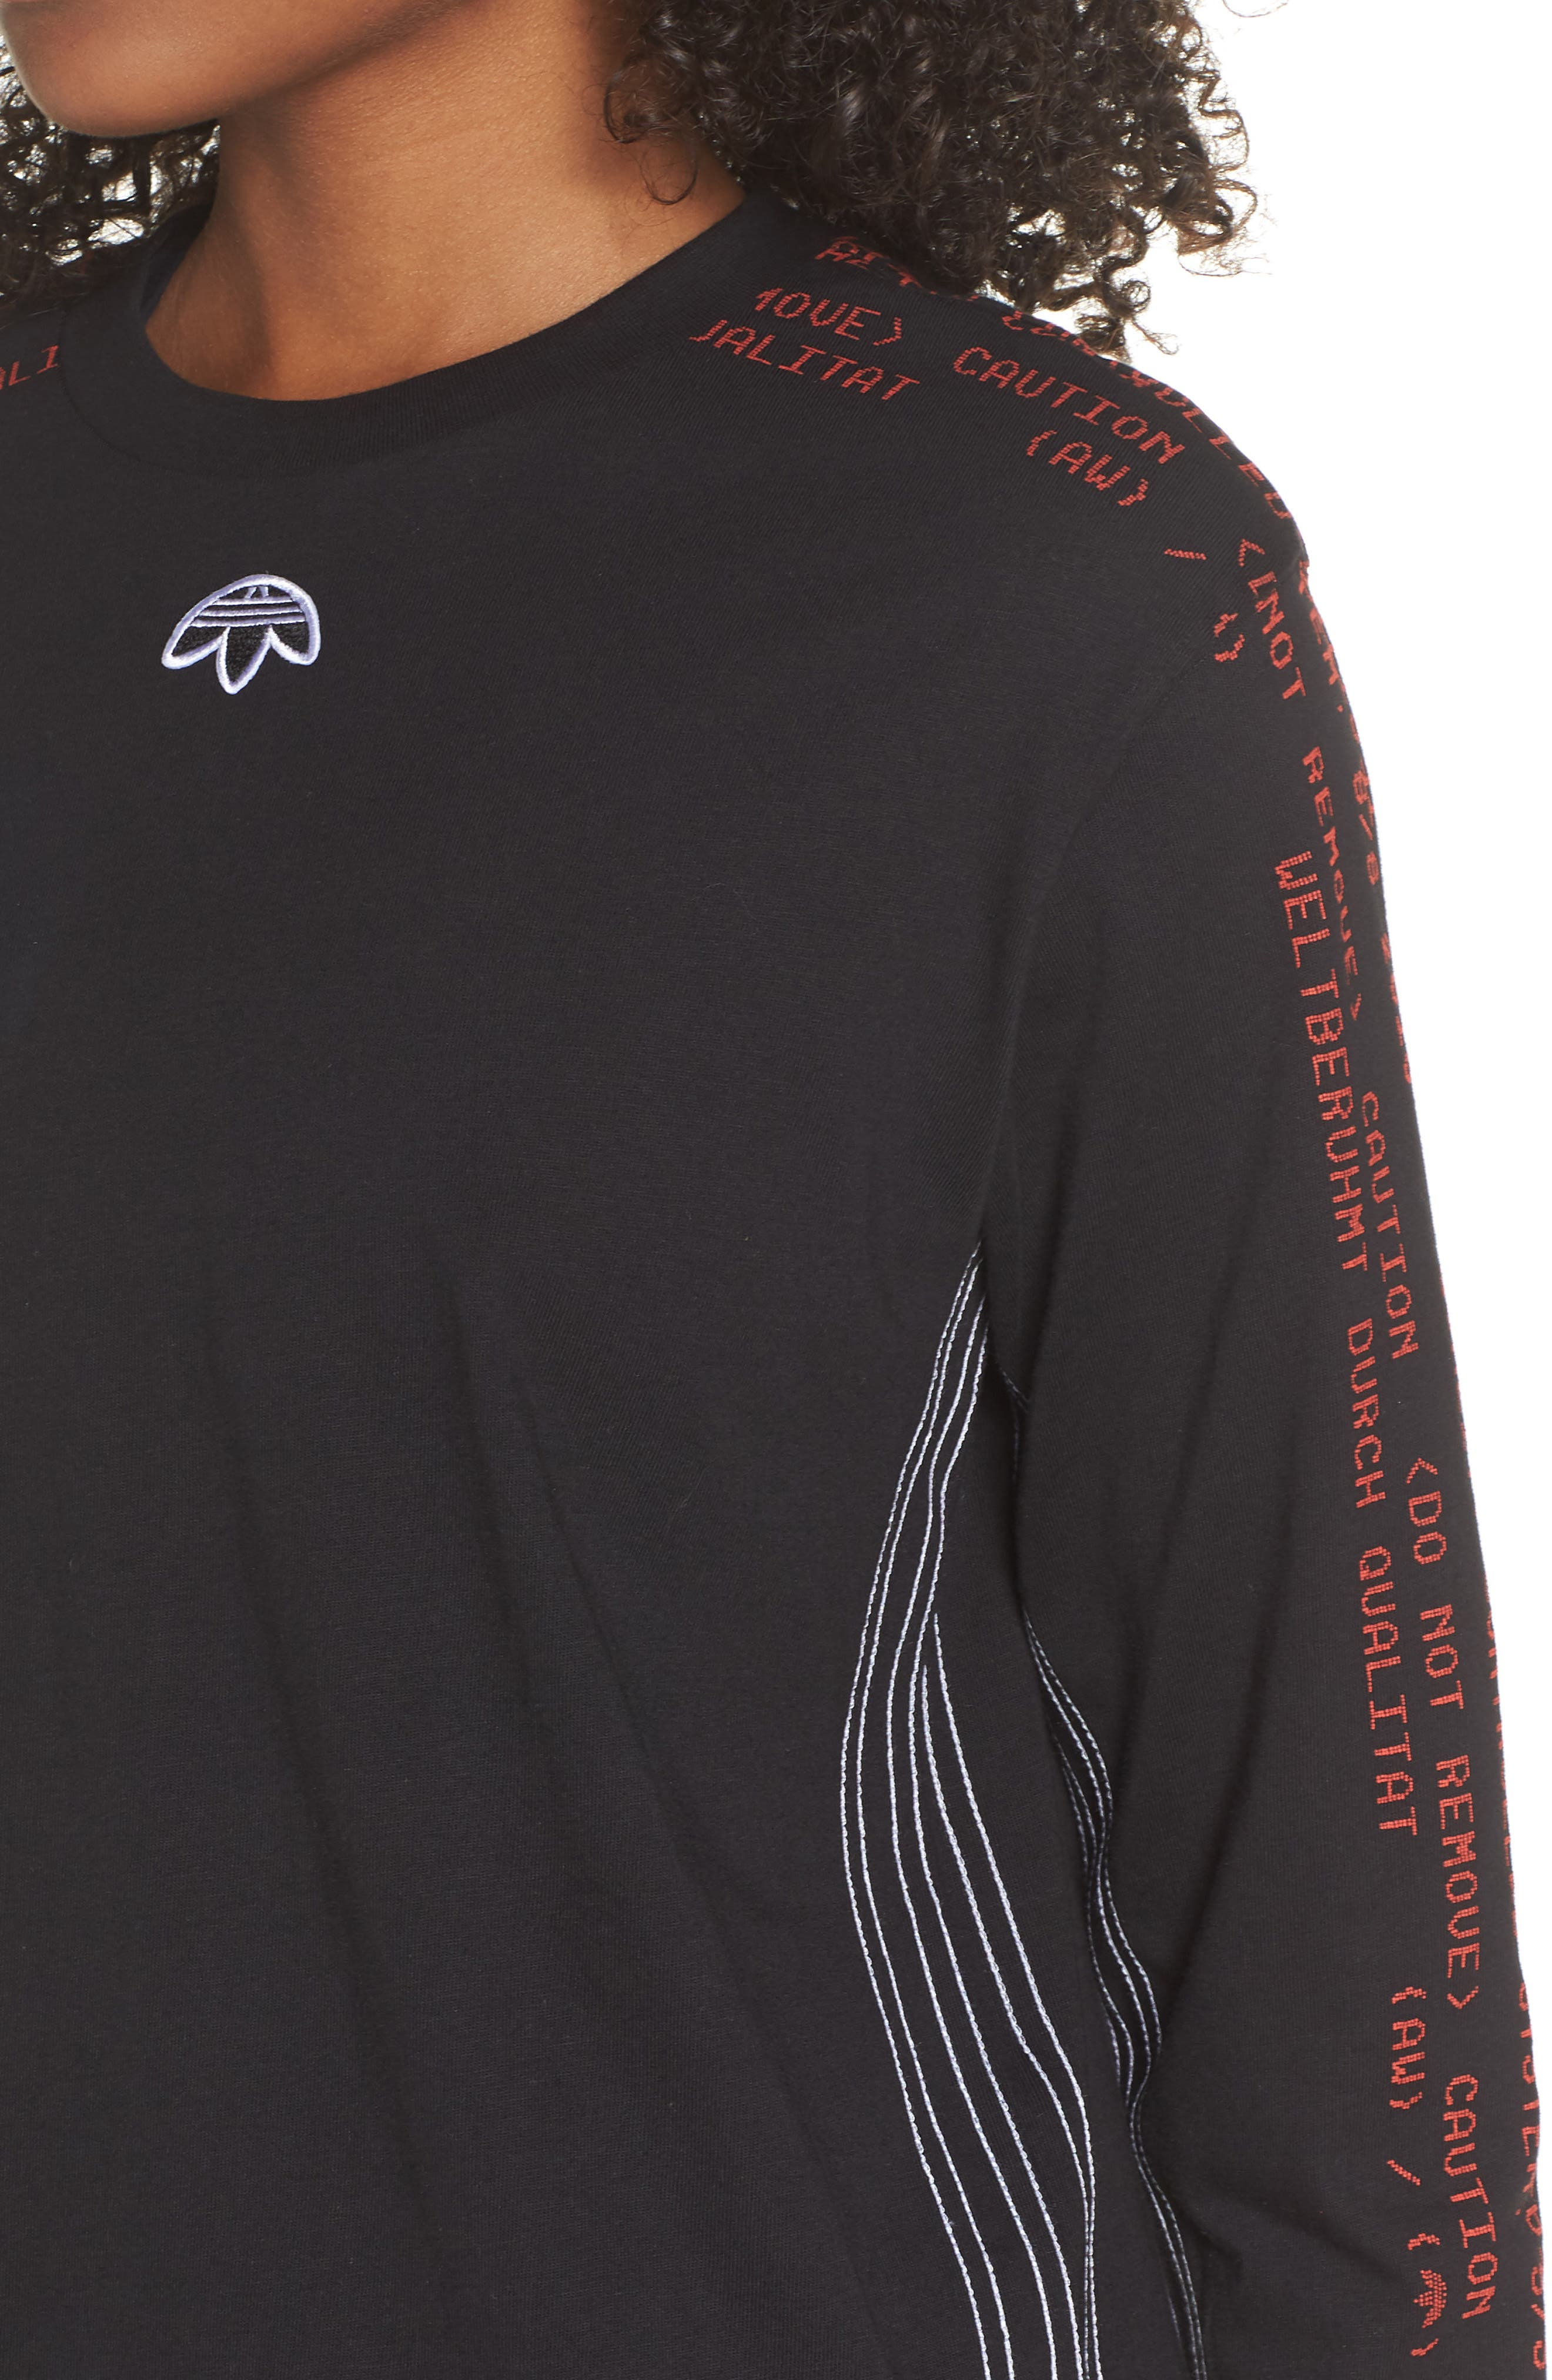 Tee,                             Alternate thumbnail 4, color,                             Black/ Core Red